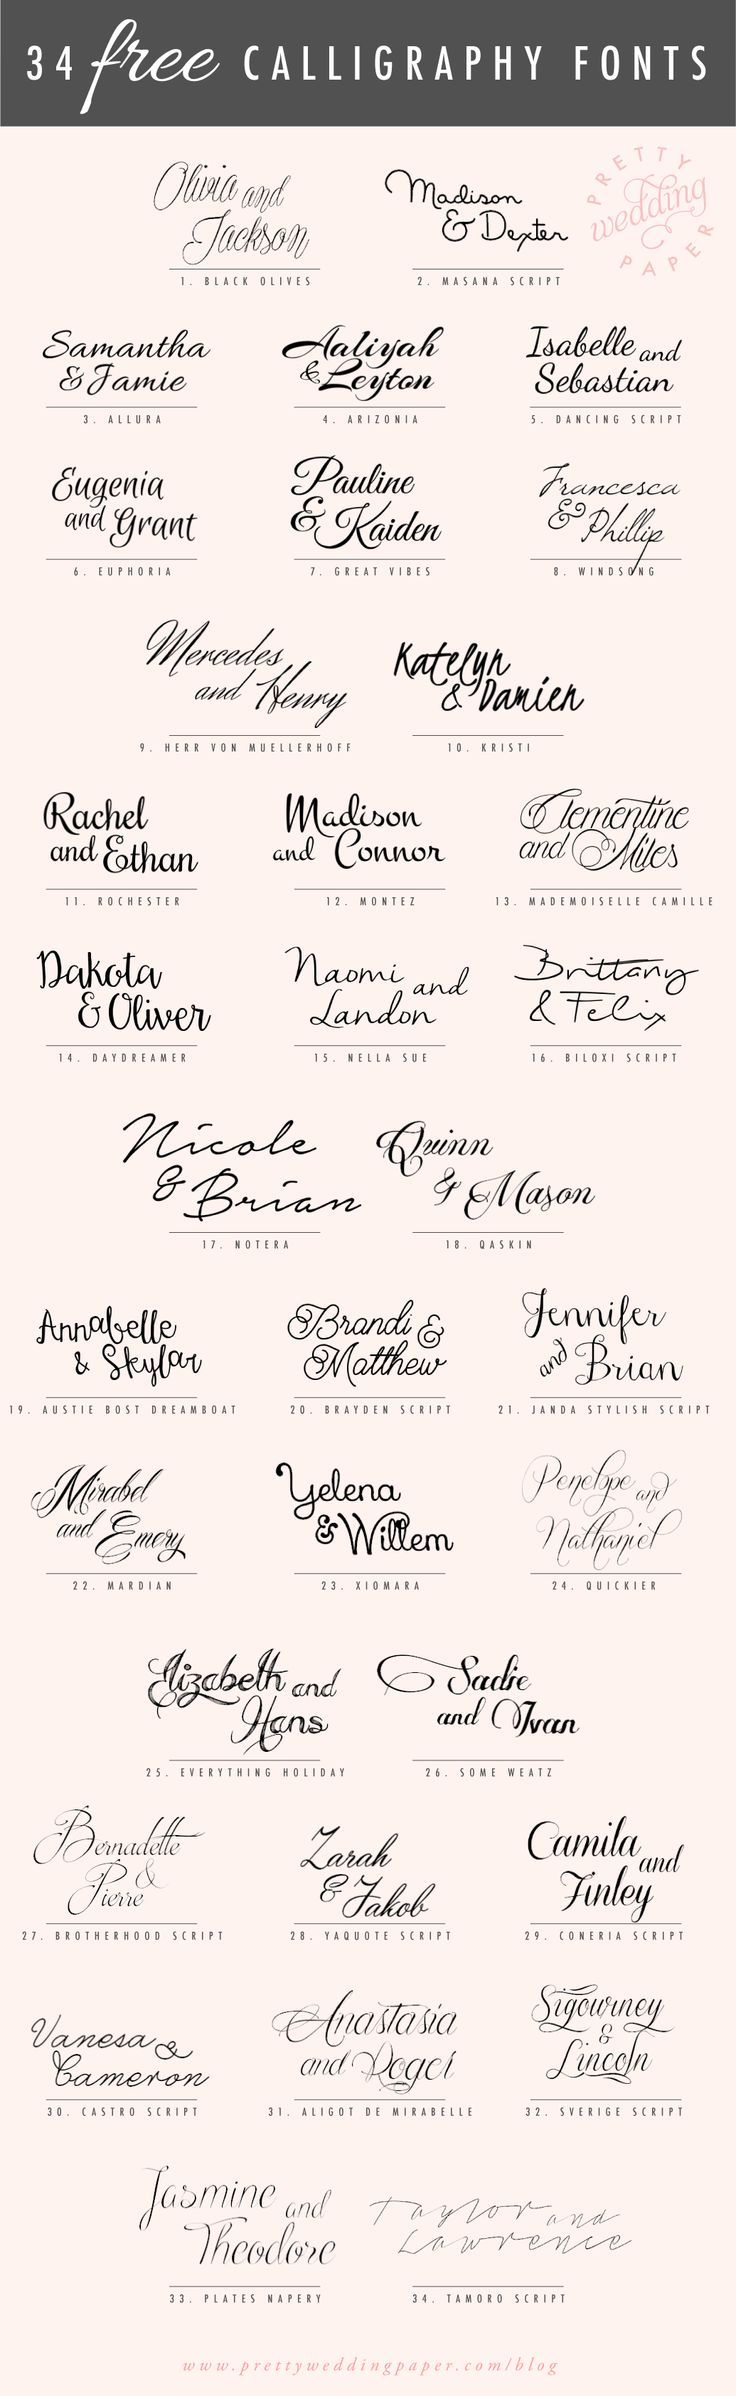 Free calligraphy script fonts for wedding invitations